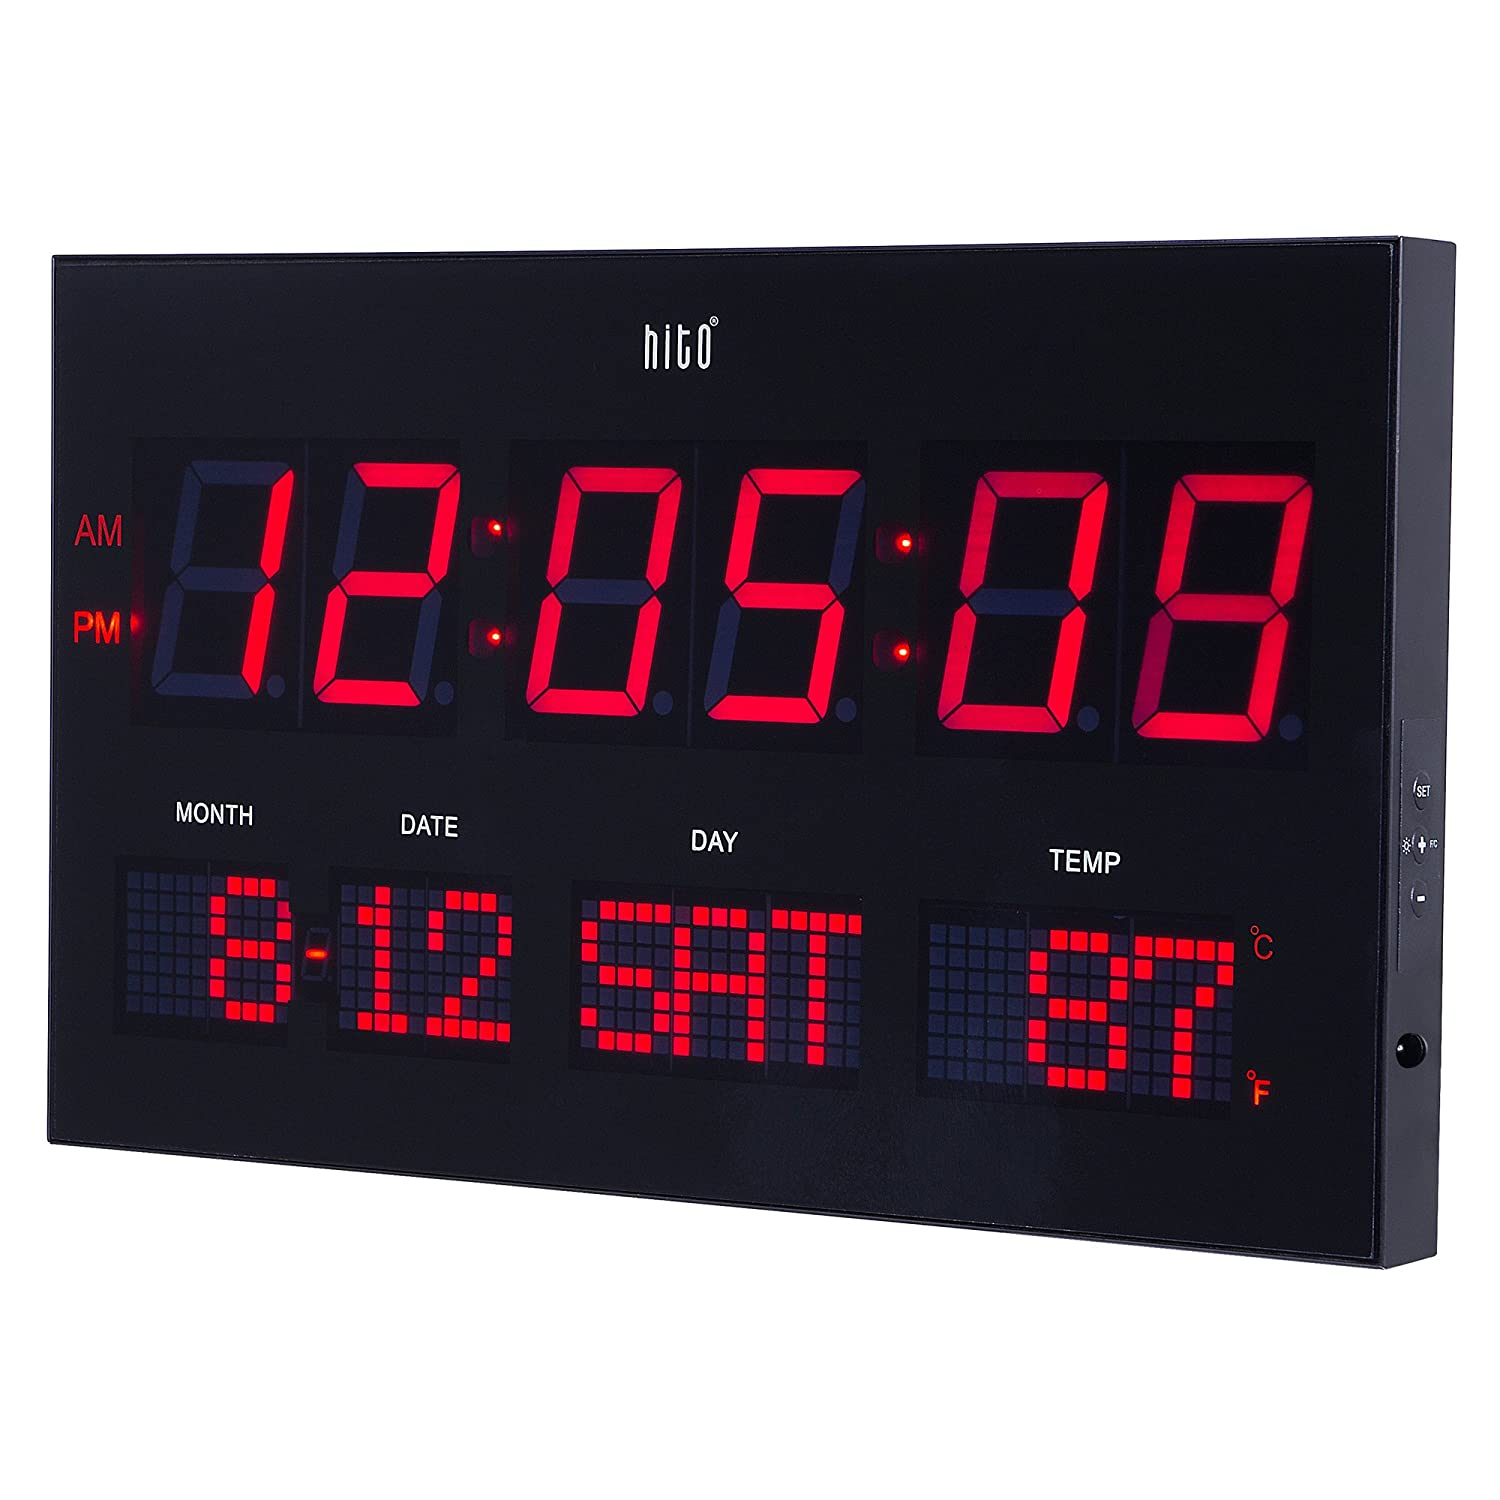 hito 14.2 Large Oversized LED Wall Clock Seconds Date Day Indoor Temperature Adjustable Brightness Memory Function Adapter Included Decorative for Living Room Office Conference Room Bedroom Red